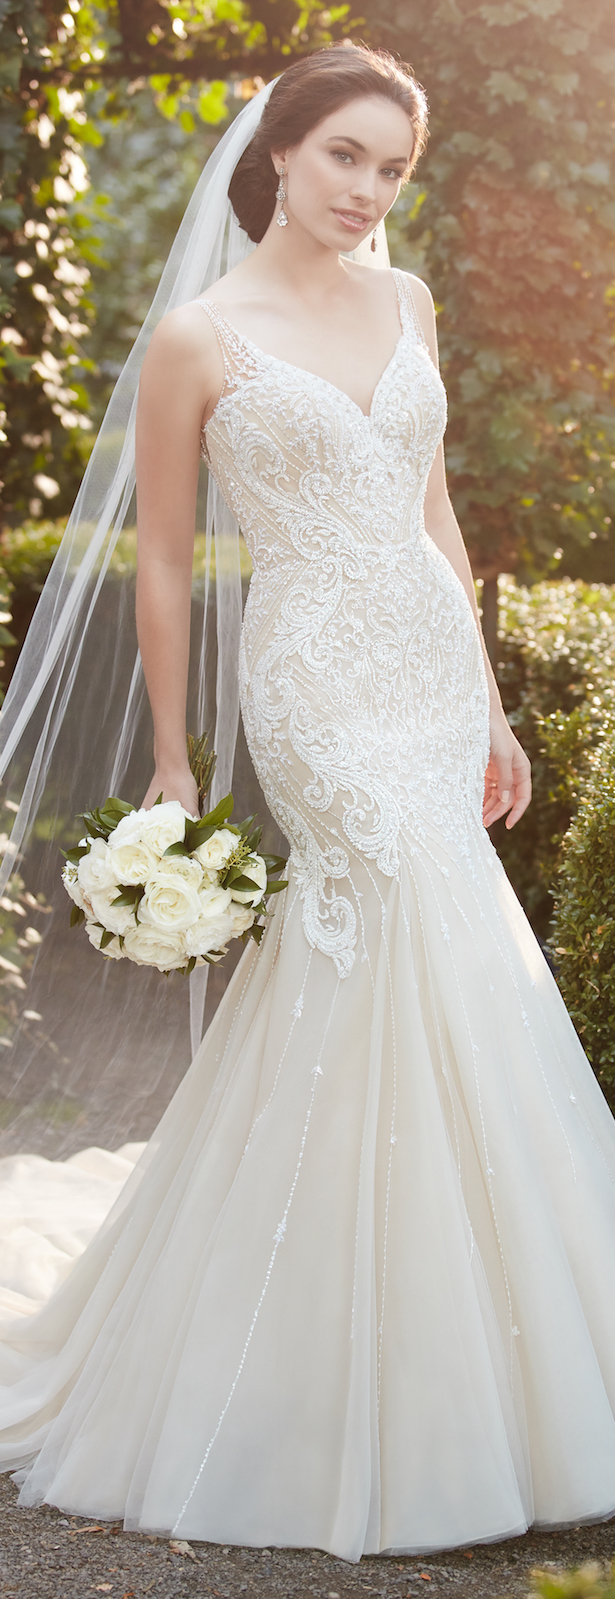 Panina Wedding Dress Prices